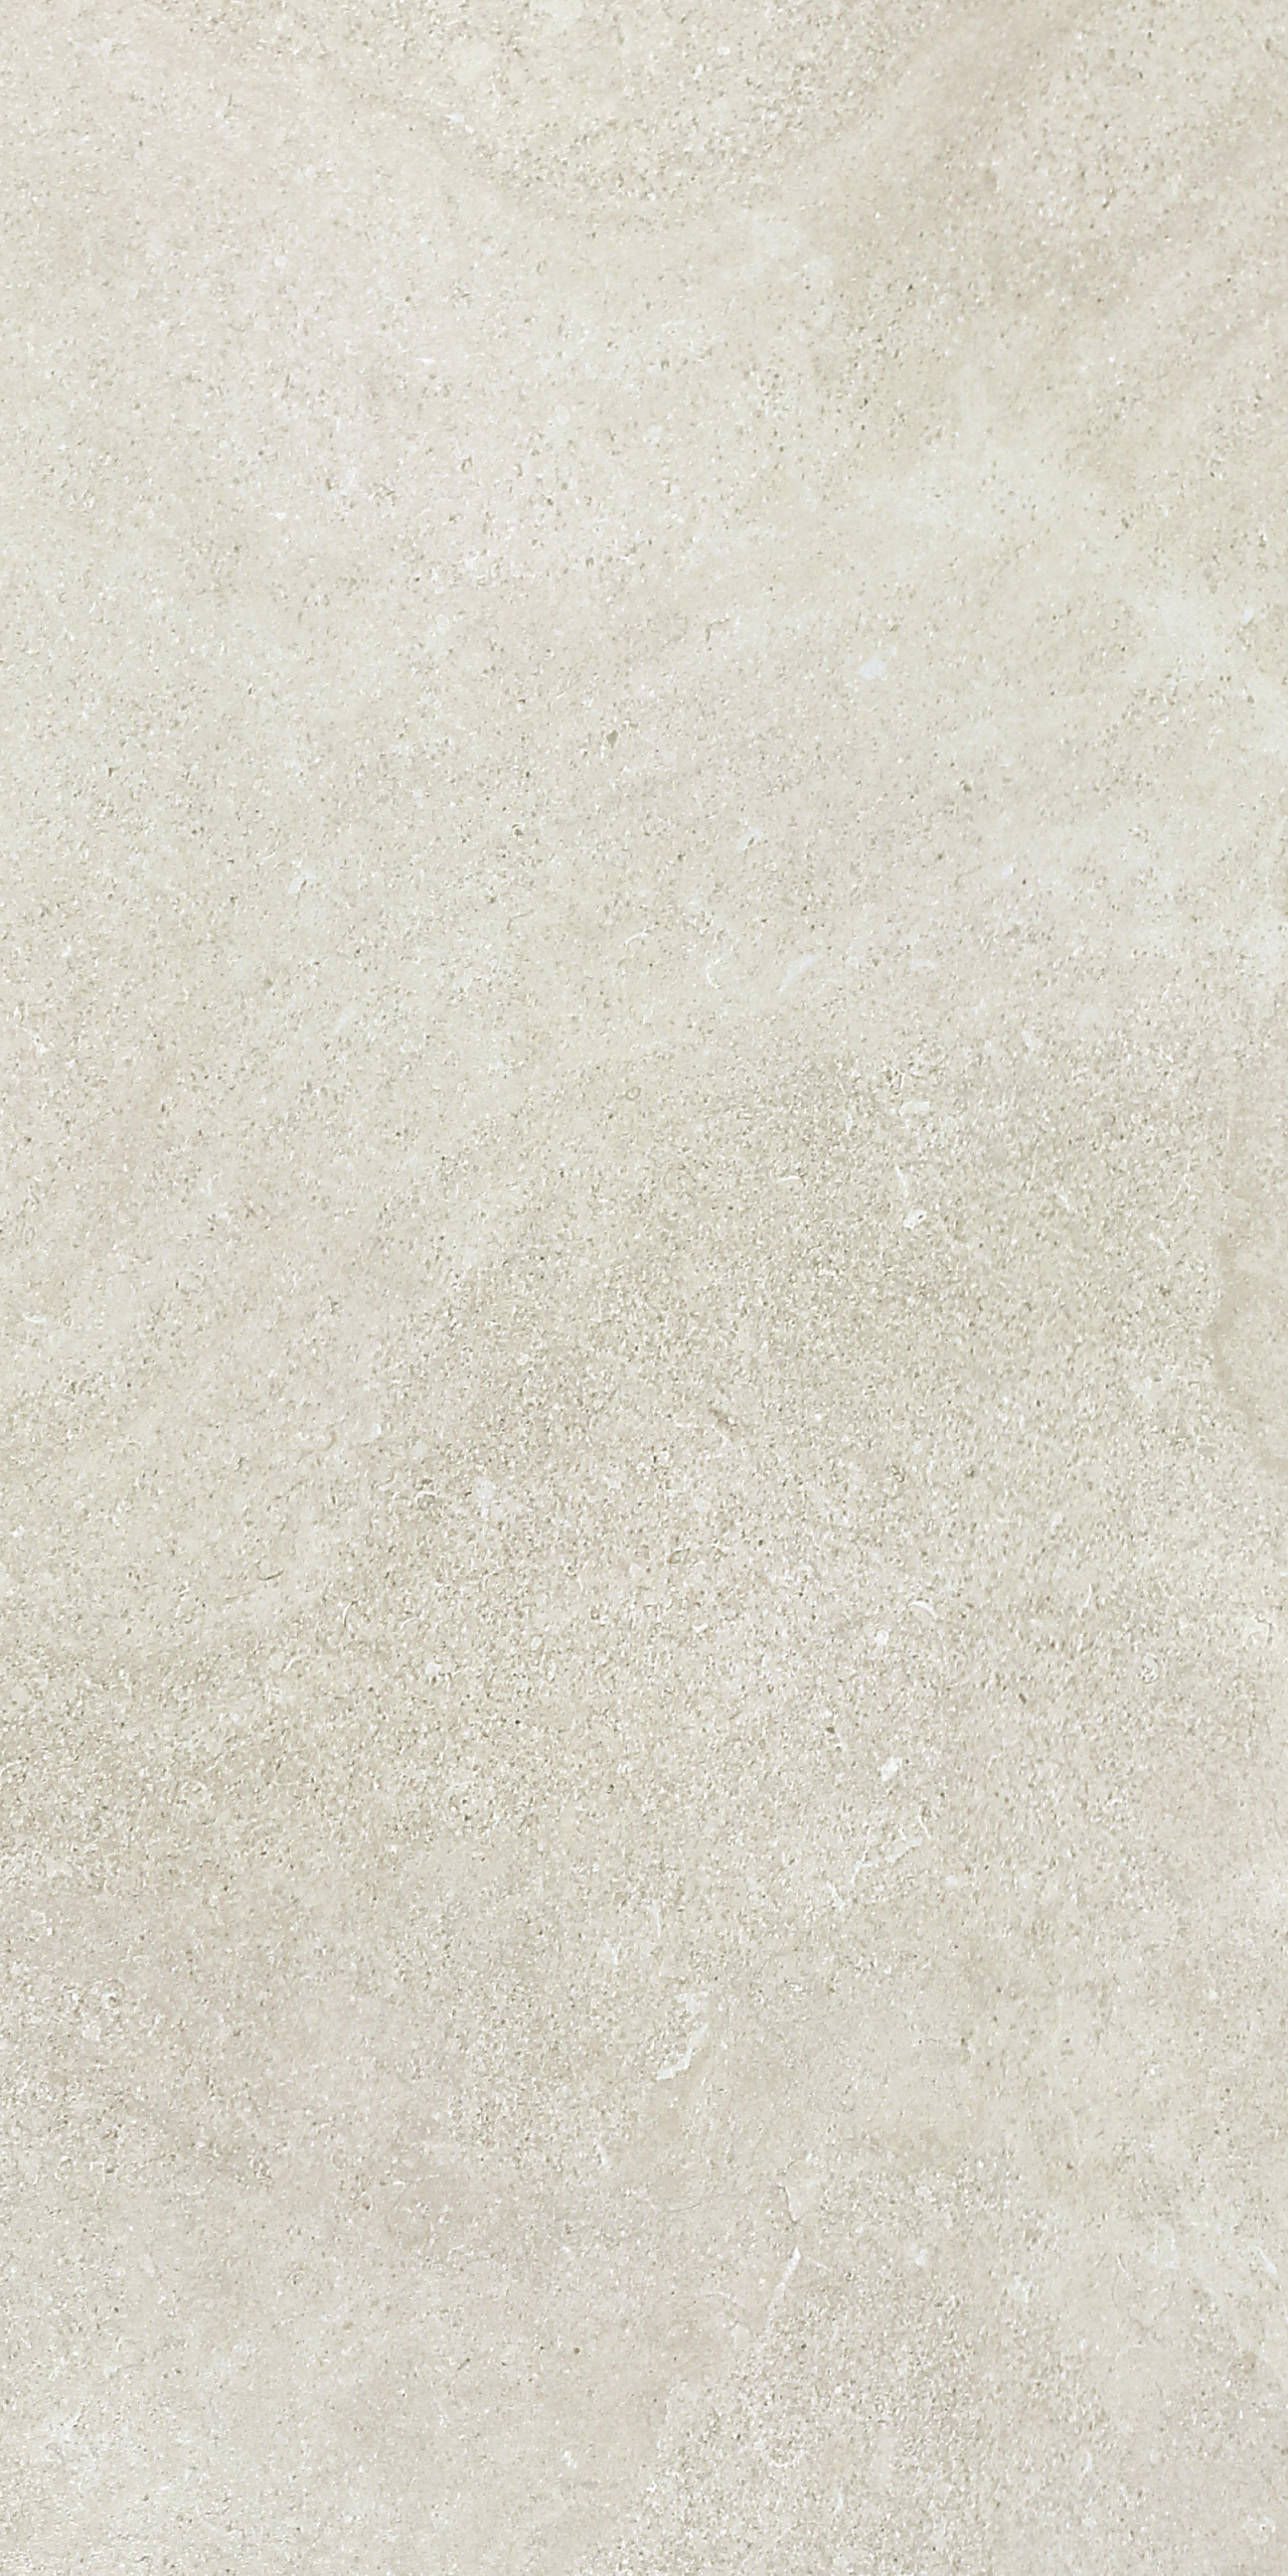 Soapstone Porcelain Tile, TileDaily, Light Grey